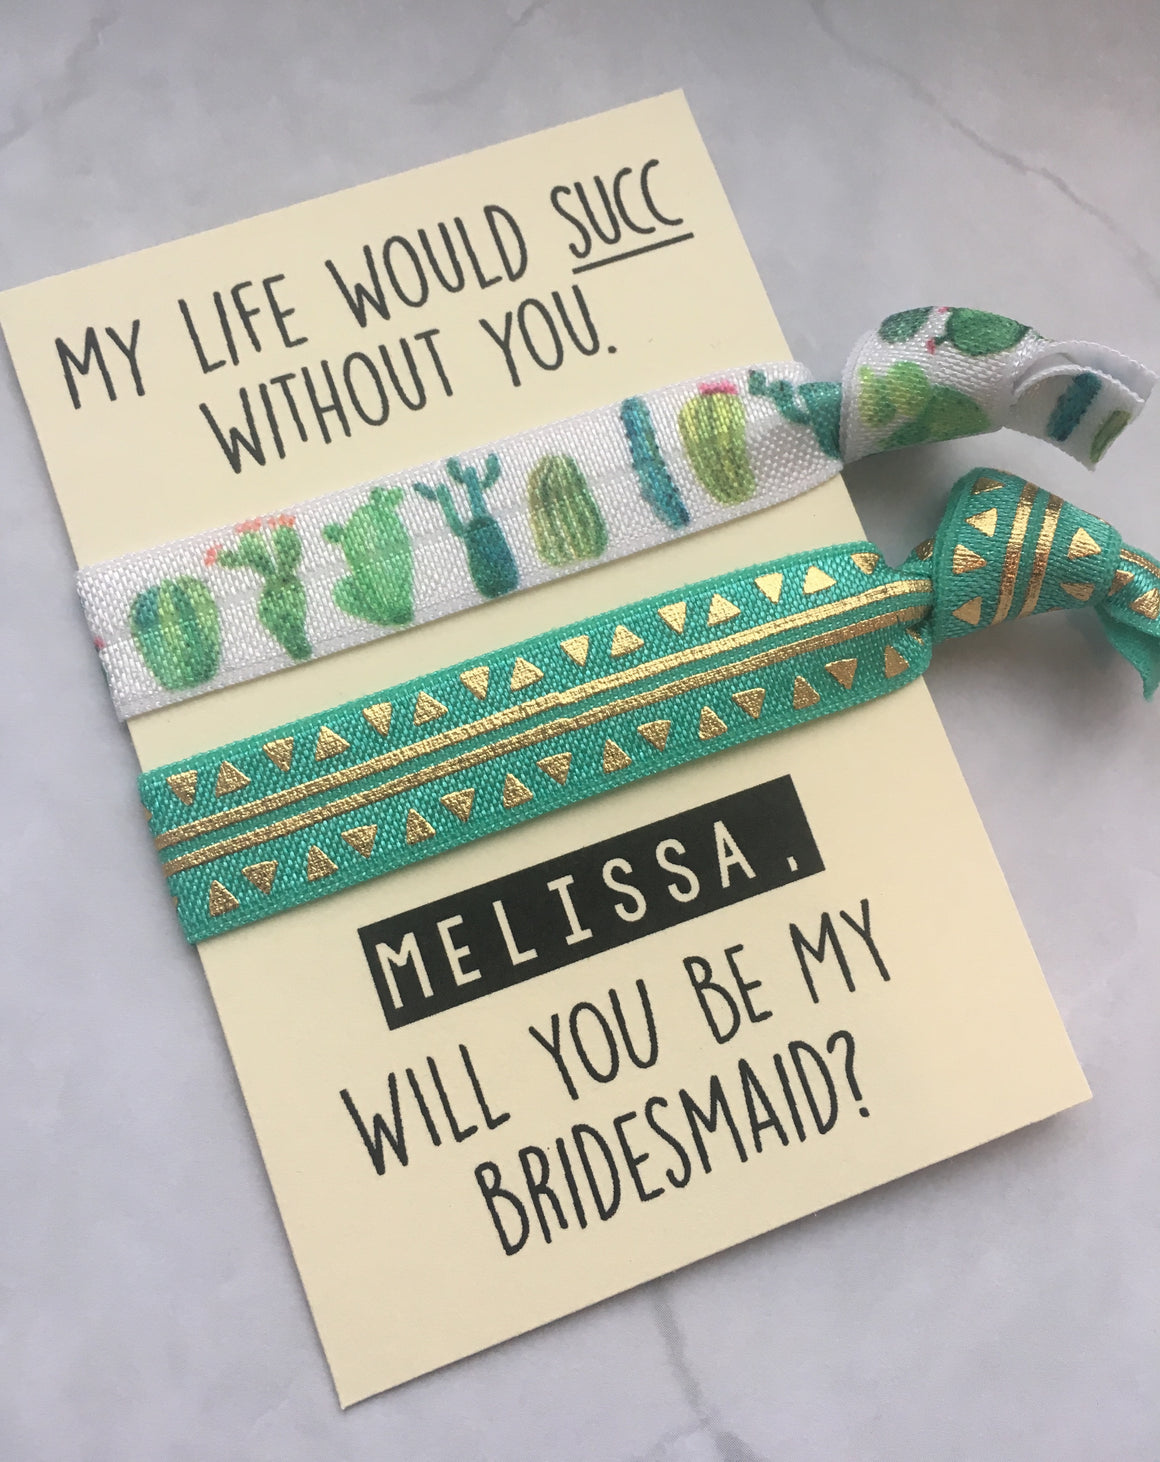 hair tie set // will you be my bridesmaid // my life would succ without you // cactus // custom